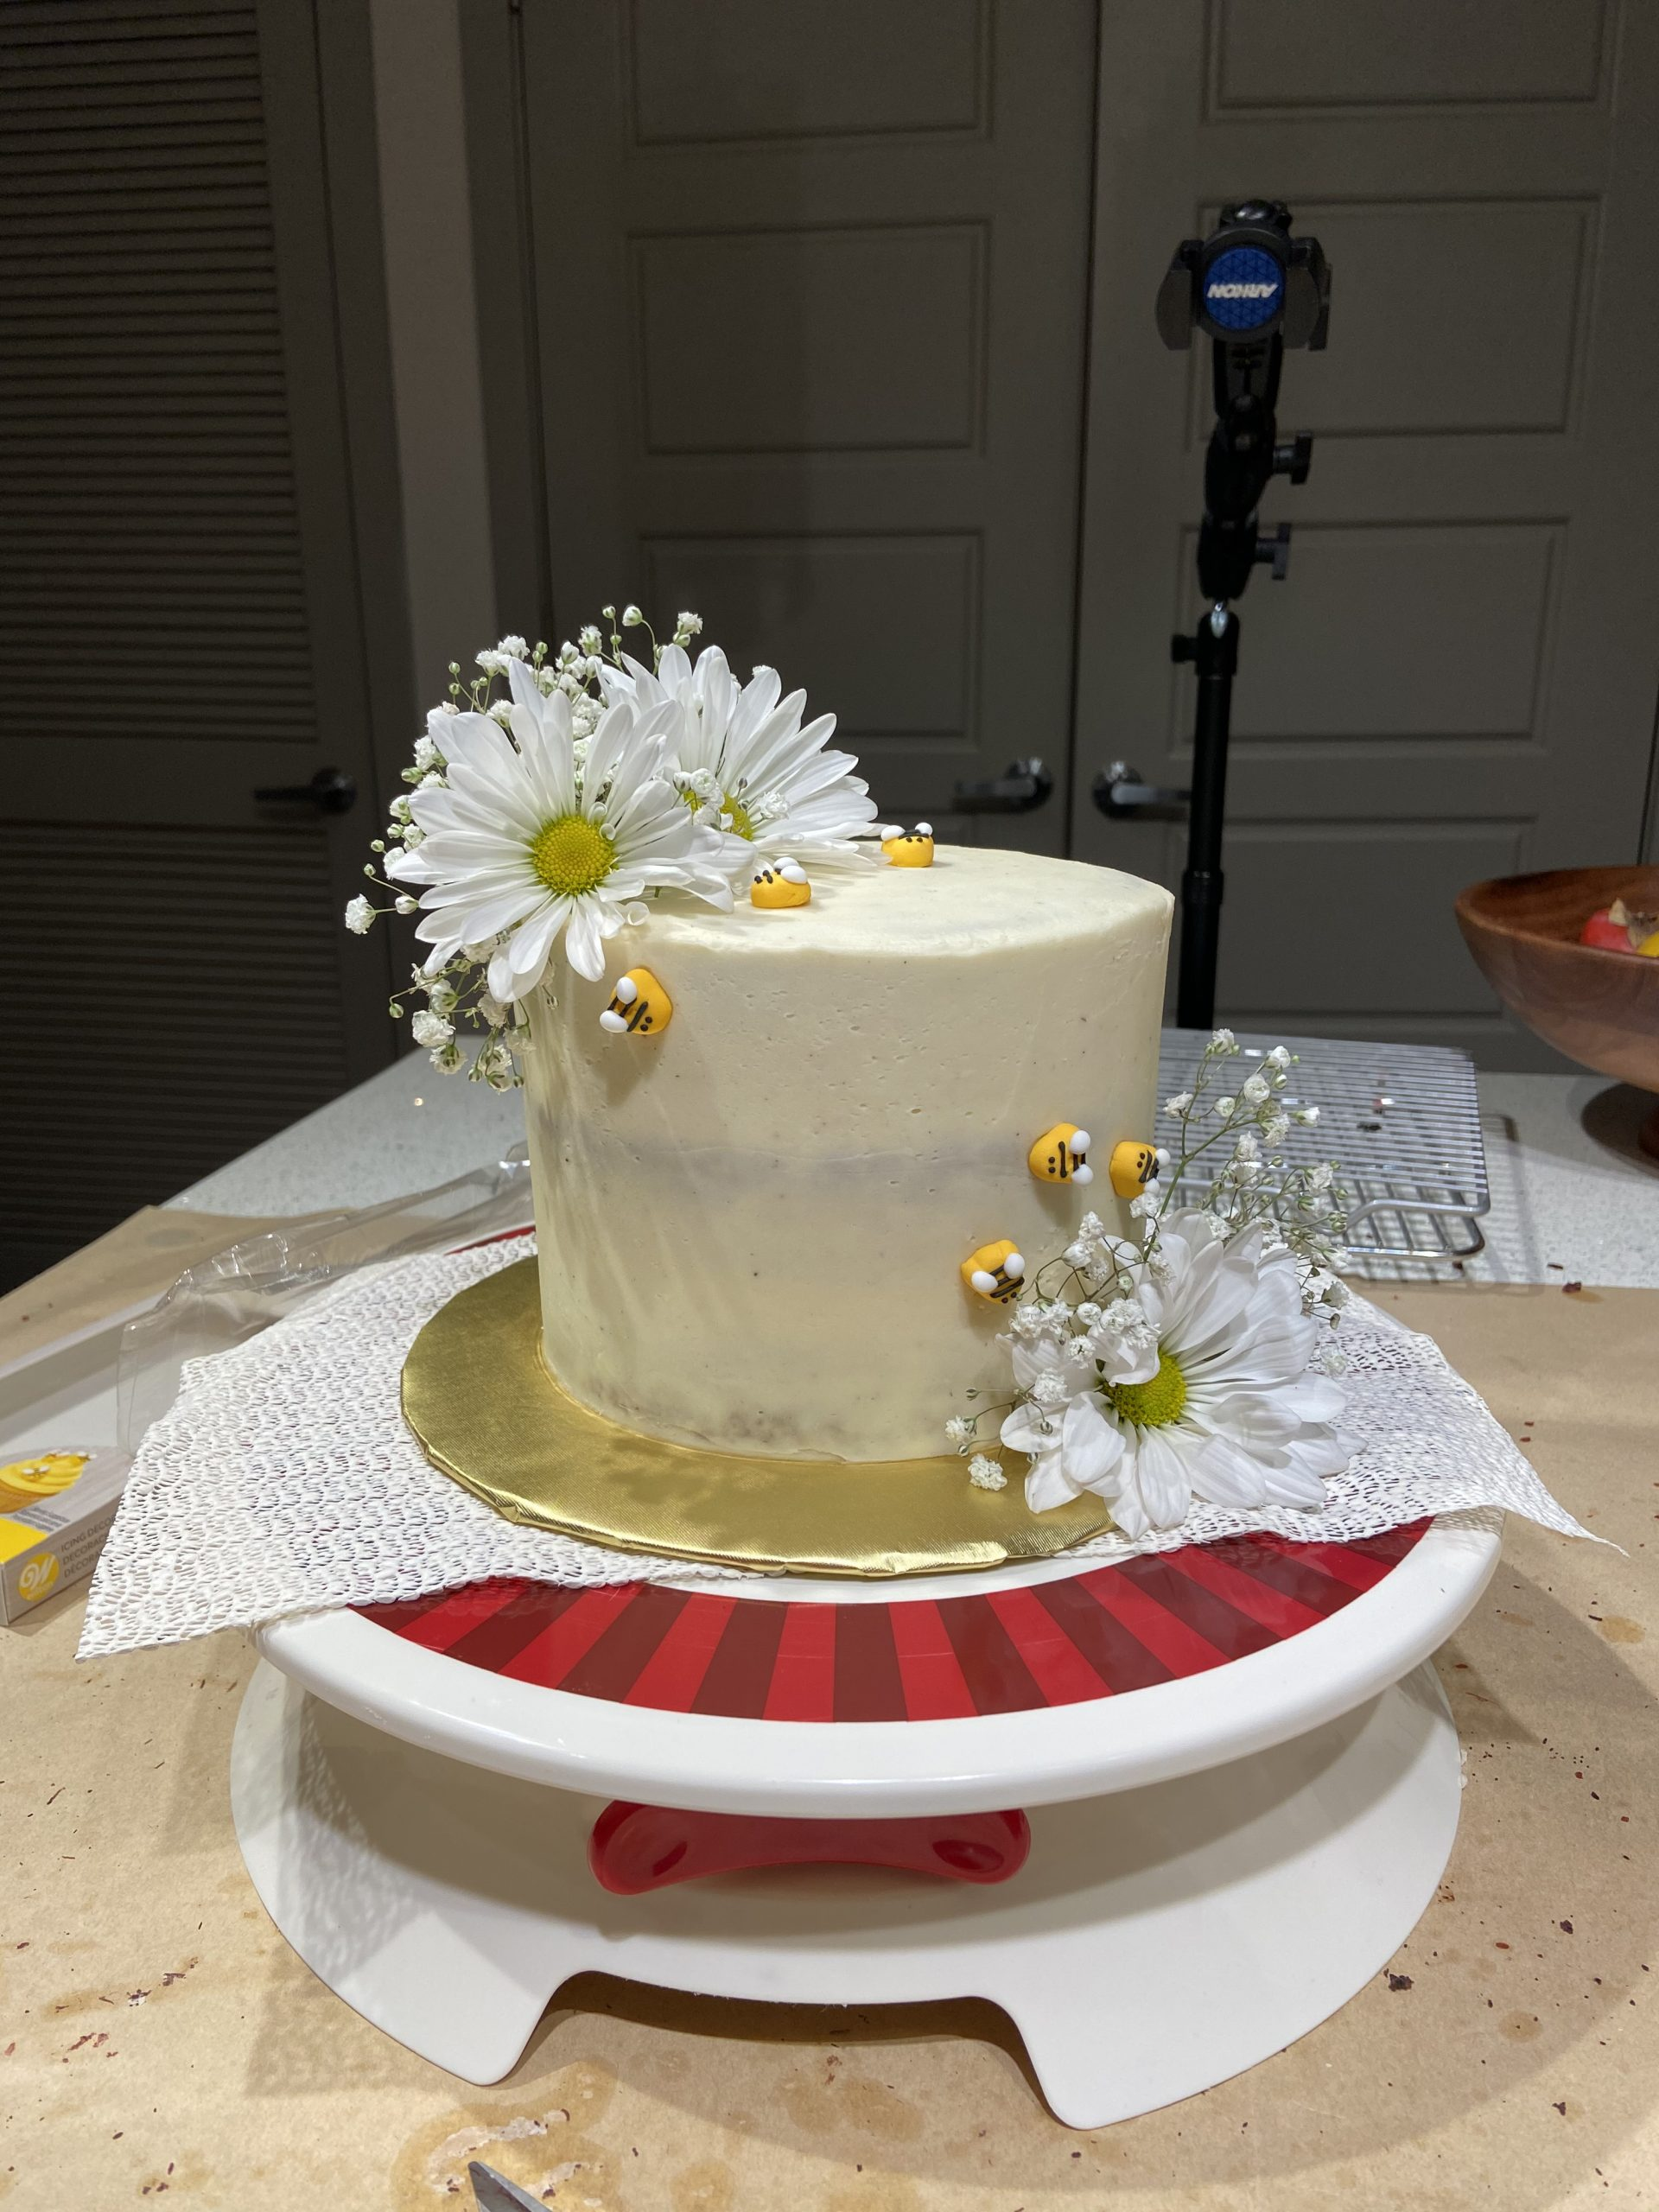 white cake with flowers and small icing bumblebees